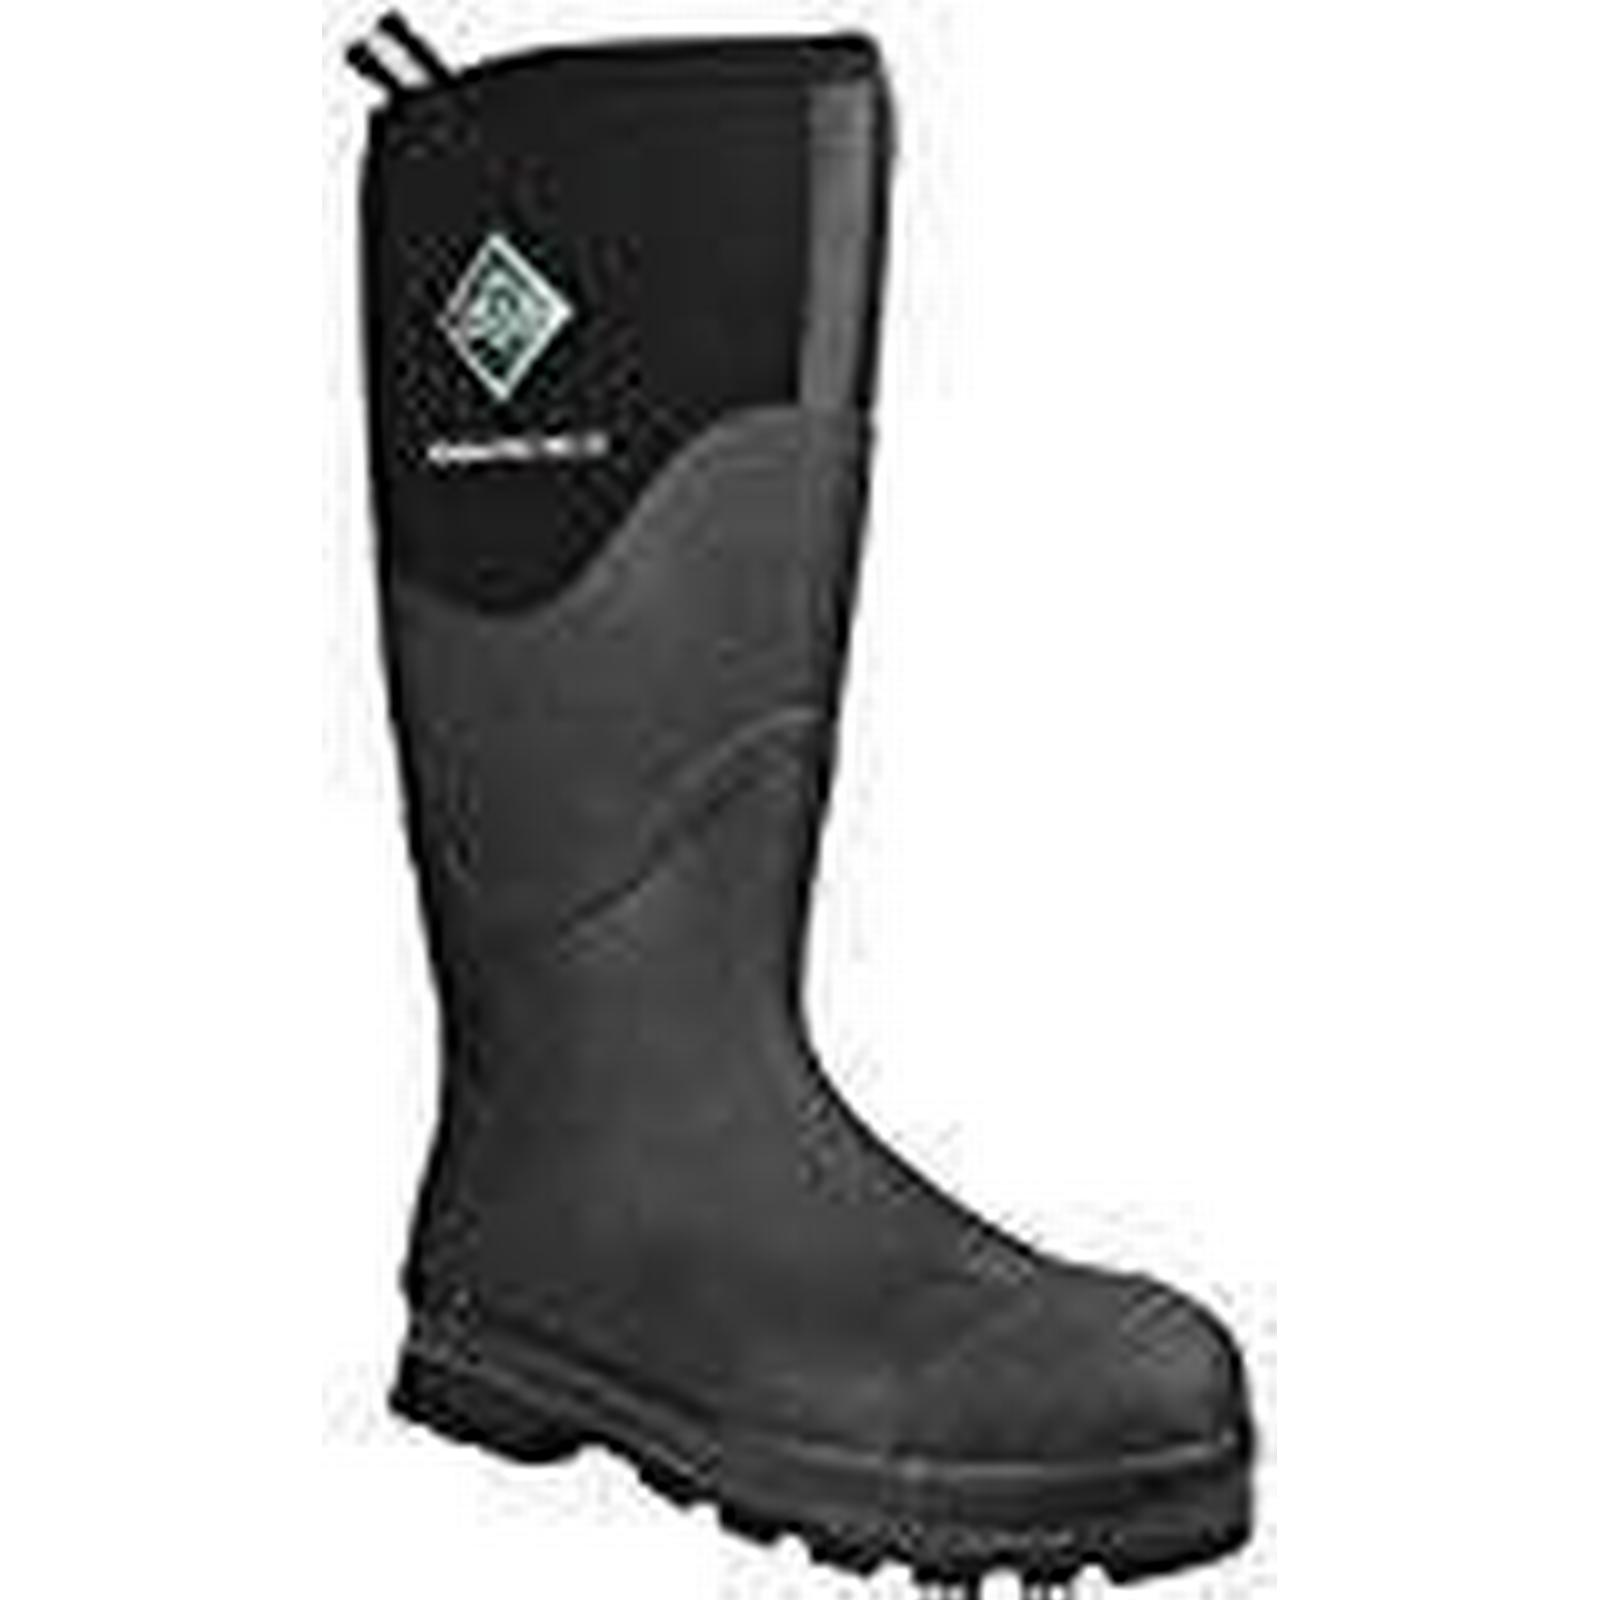 Muck Boots S/T-Black Men''s Workmaster Pro Hi S/T-Black Boots Wellington (Black), 10 UK 44/45 EU ae9acd